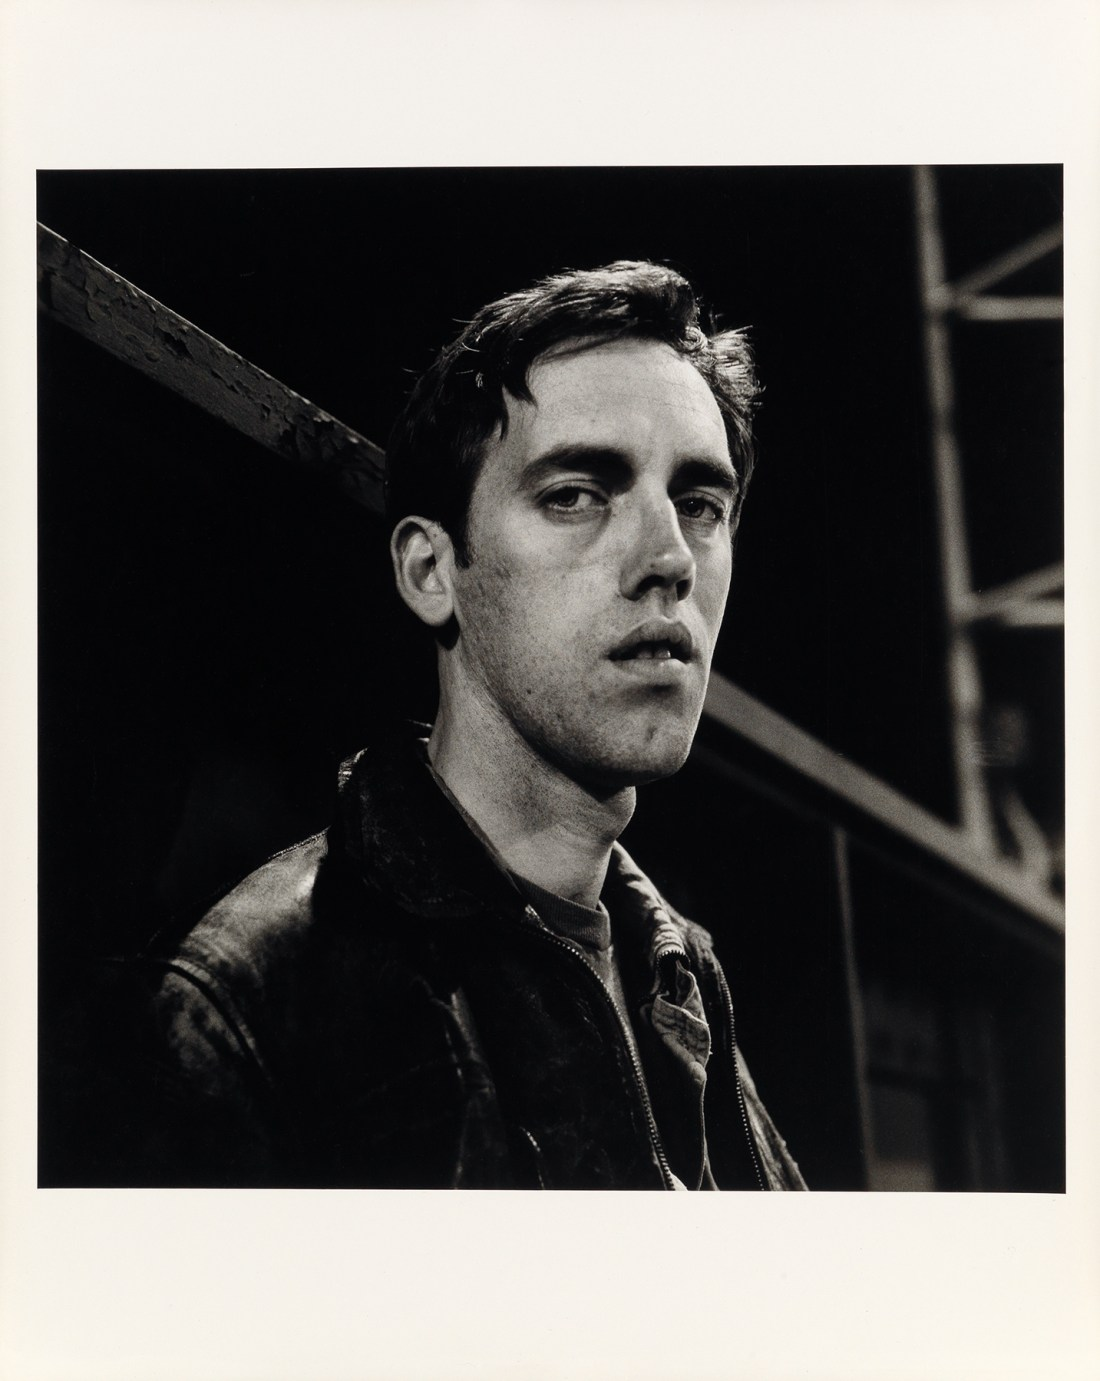 Peter Hujar's black and white print, David Wojnarowicz: Manhattan-Night (III), features his friend and mentee. David Wojnarowicz, looking directly at the camera with a moody, faintly sultry expression.